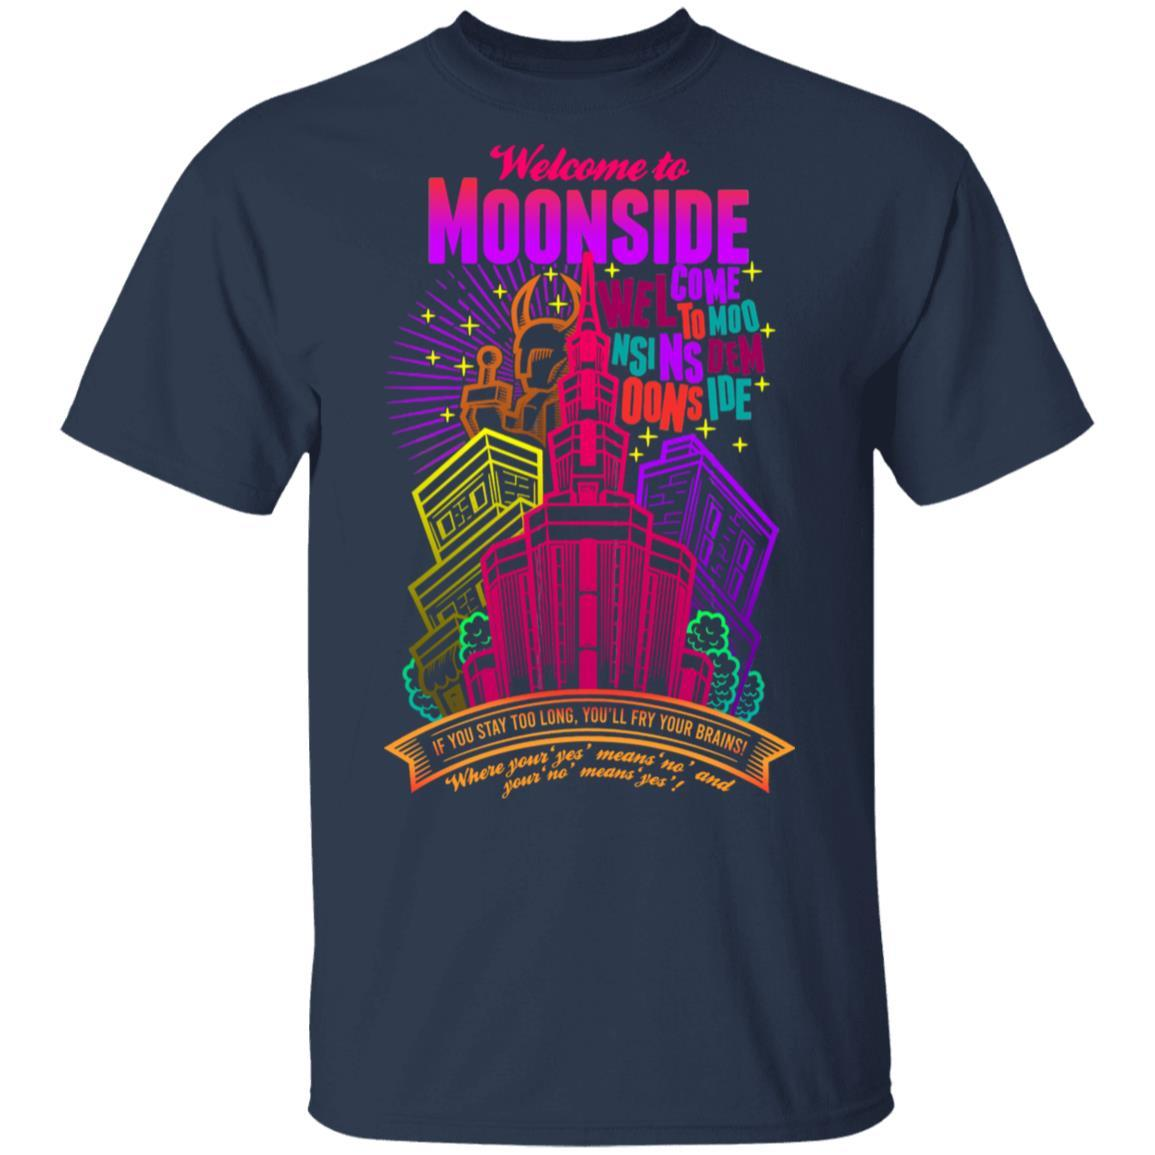 Welcome To Moonside If You Stay Too Long You'll Fry Your Brains T-Shirts, Hoodies 1049-9966-88445012-48248 - Tee Ript